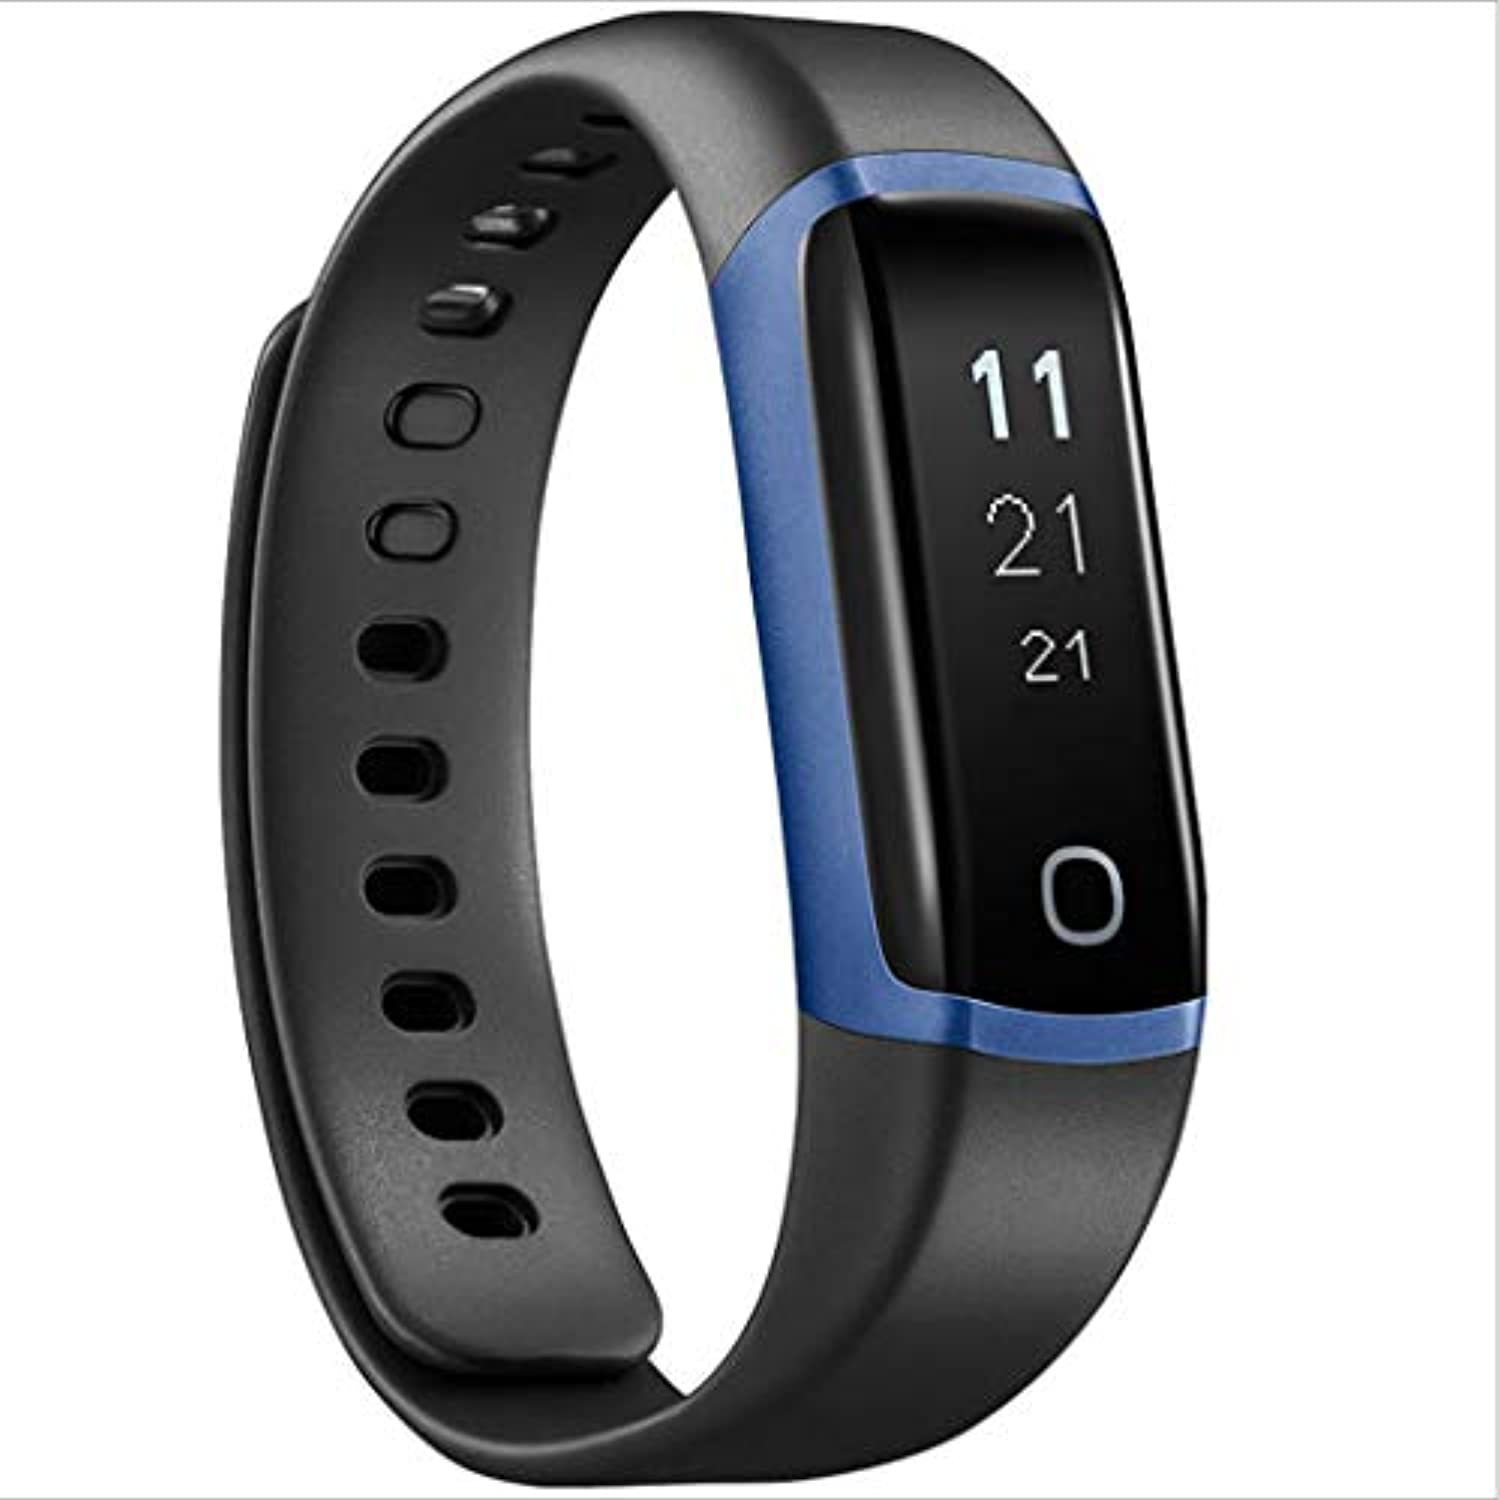 Sleep Heart Rate Metal Edging Waterproof Smart Bracelet GPS Positioning Message Call Reminder Support Android, iOS